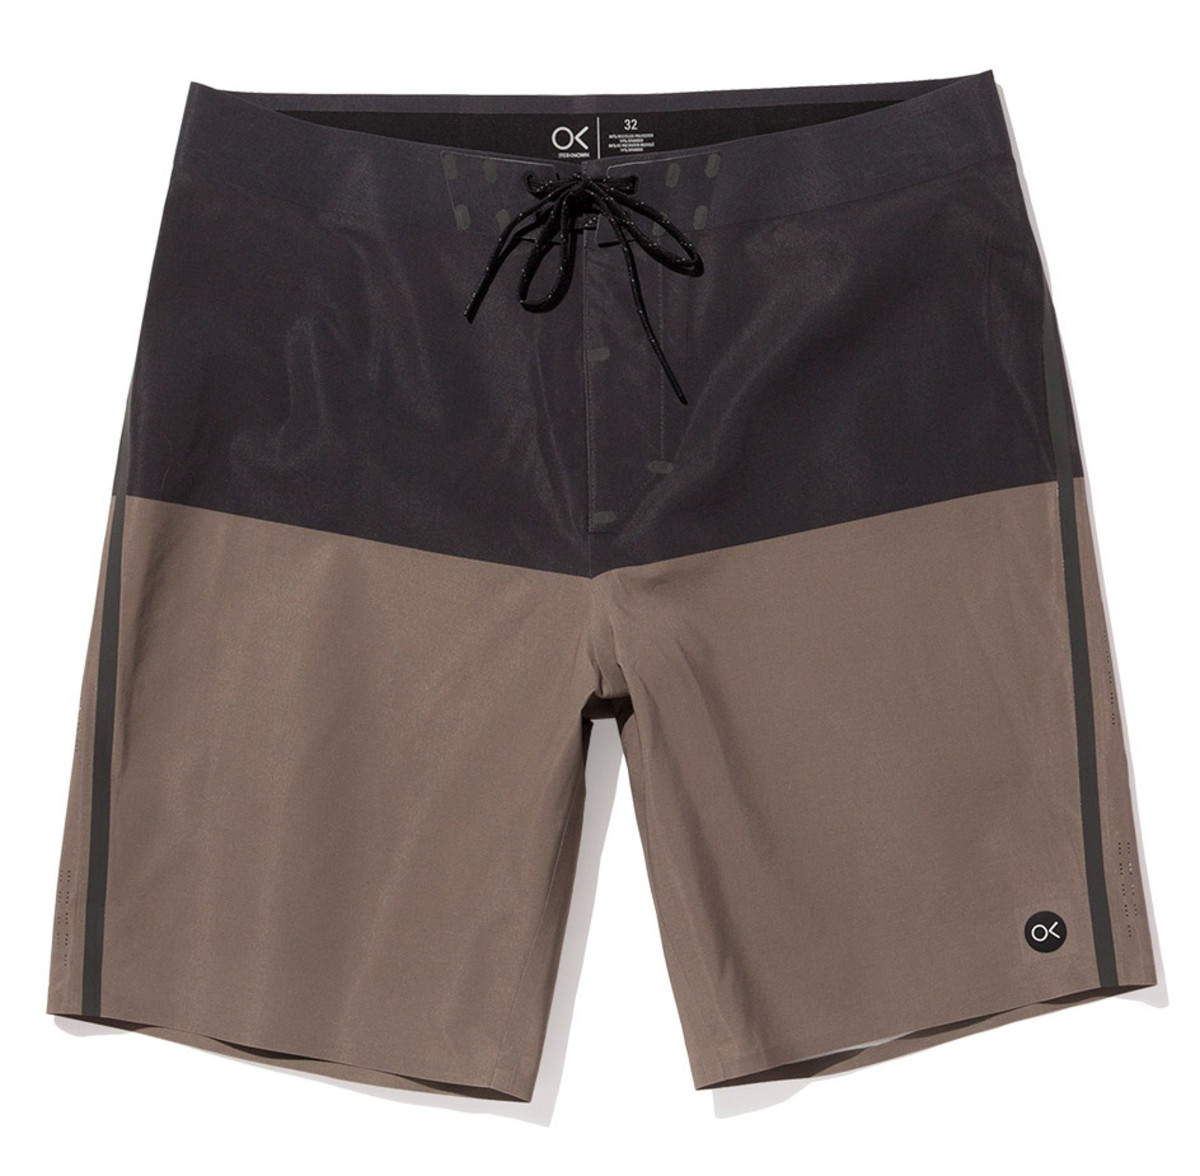 Outerknown Apex Short